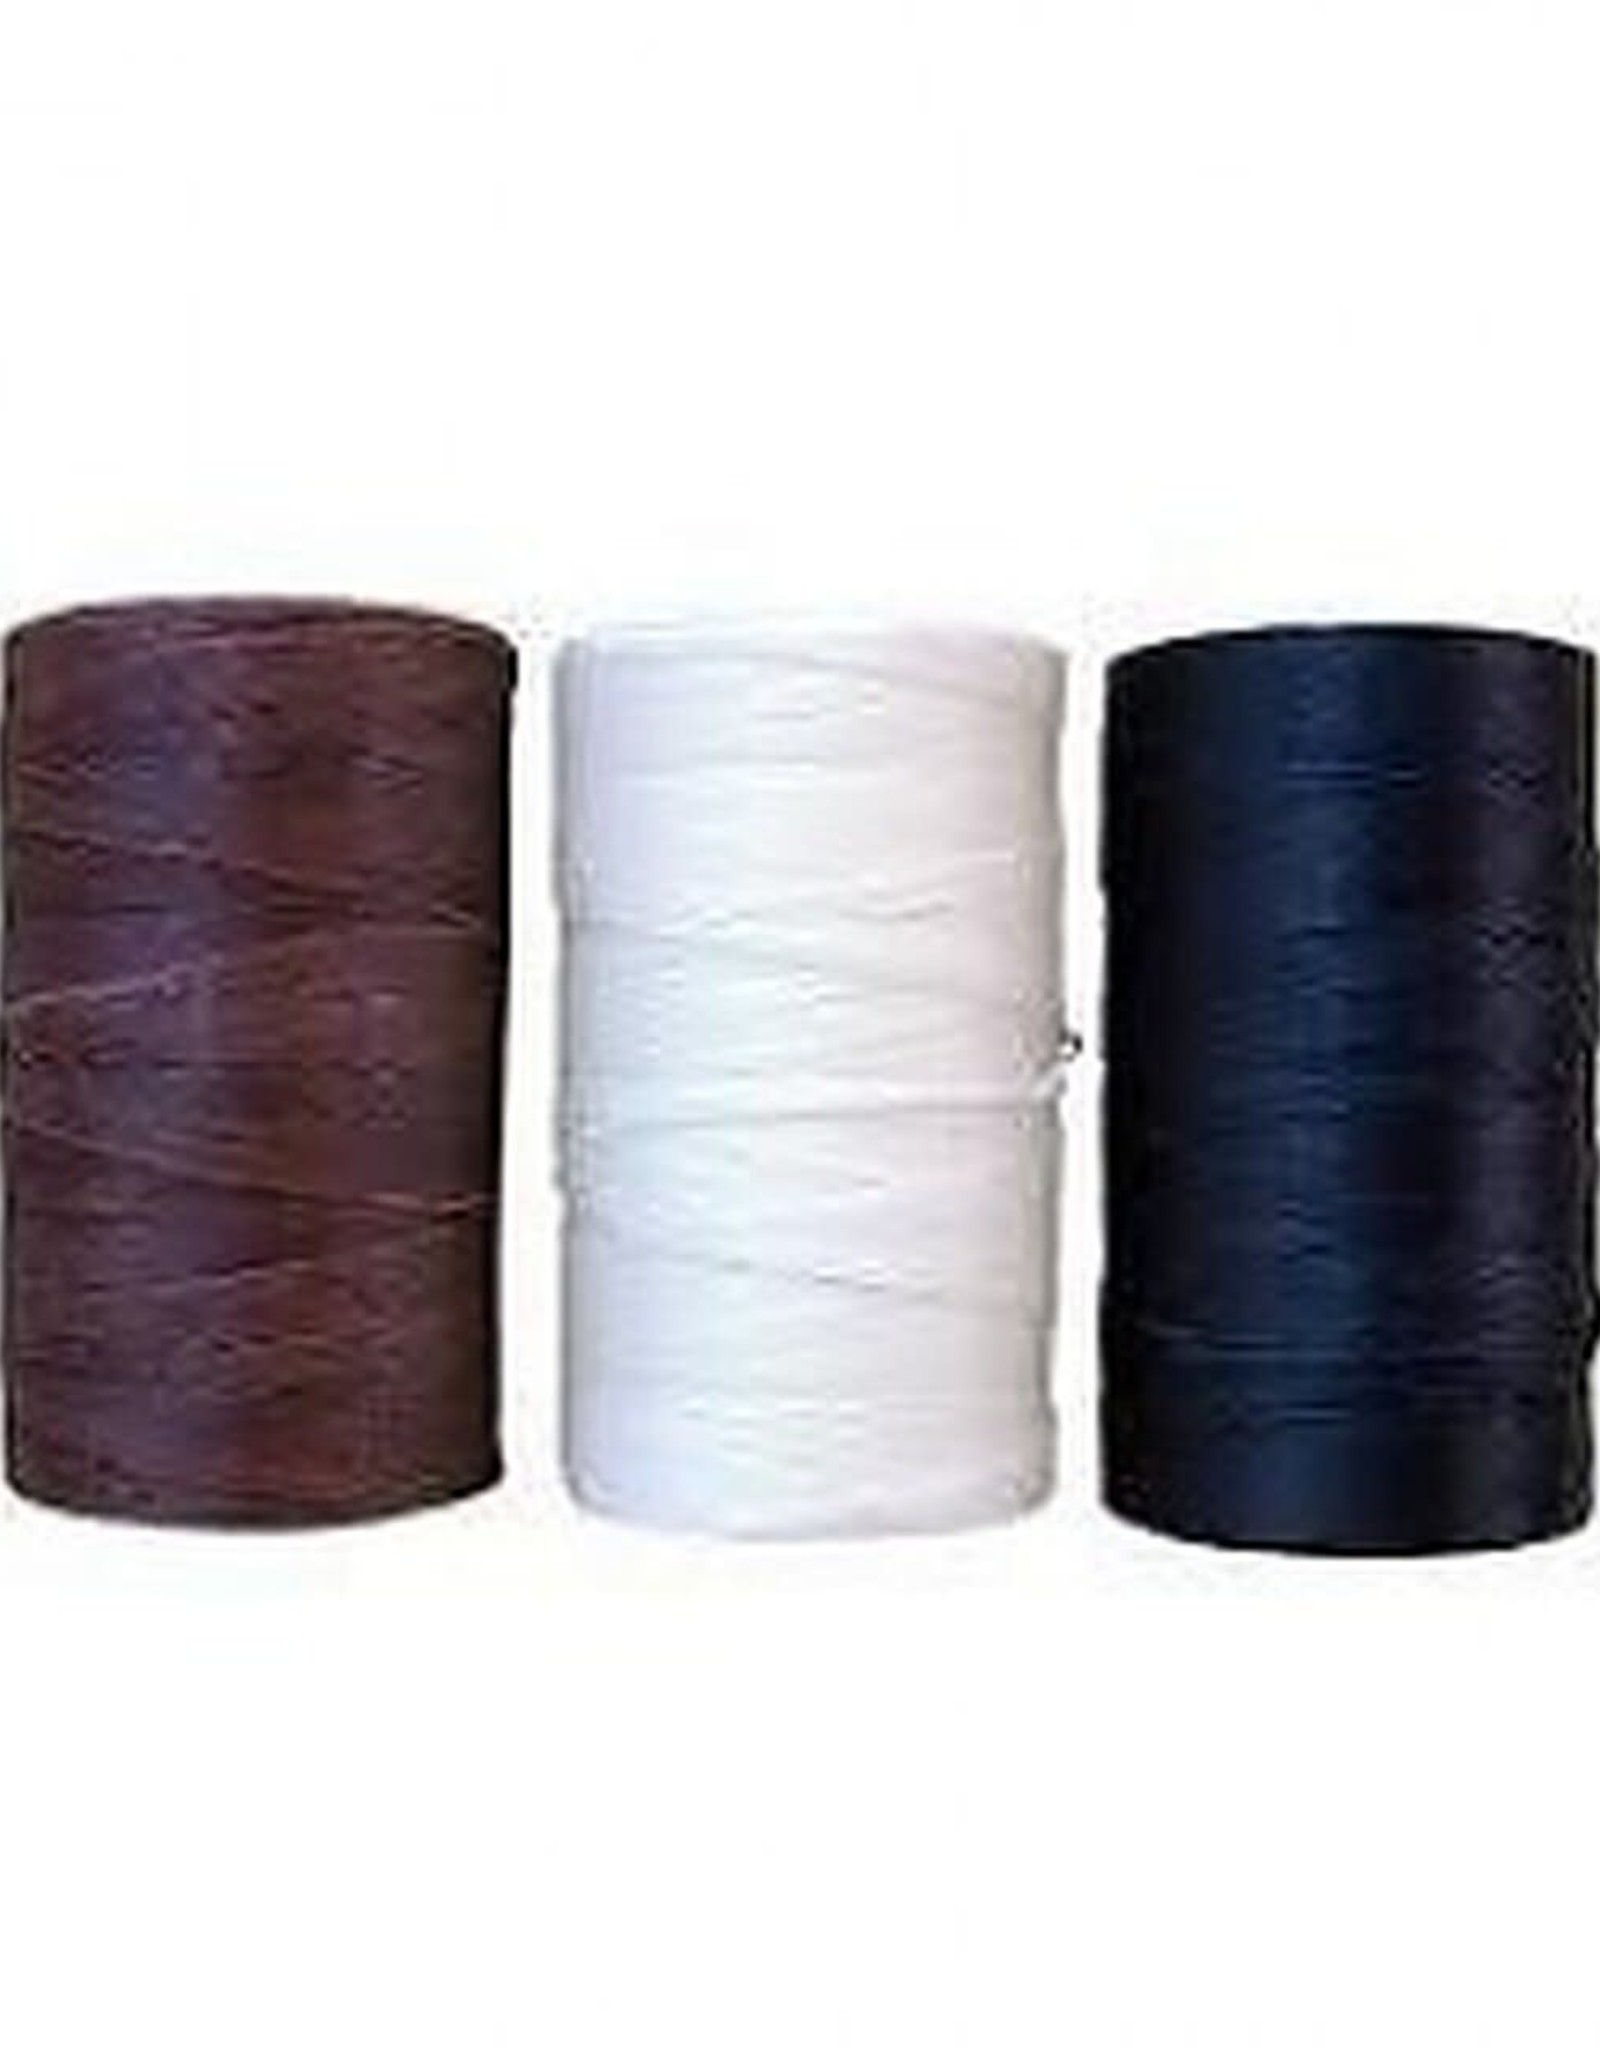 WAXED BRAIDING THREAD 4OZ